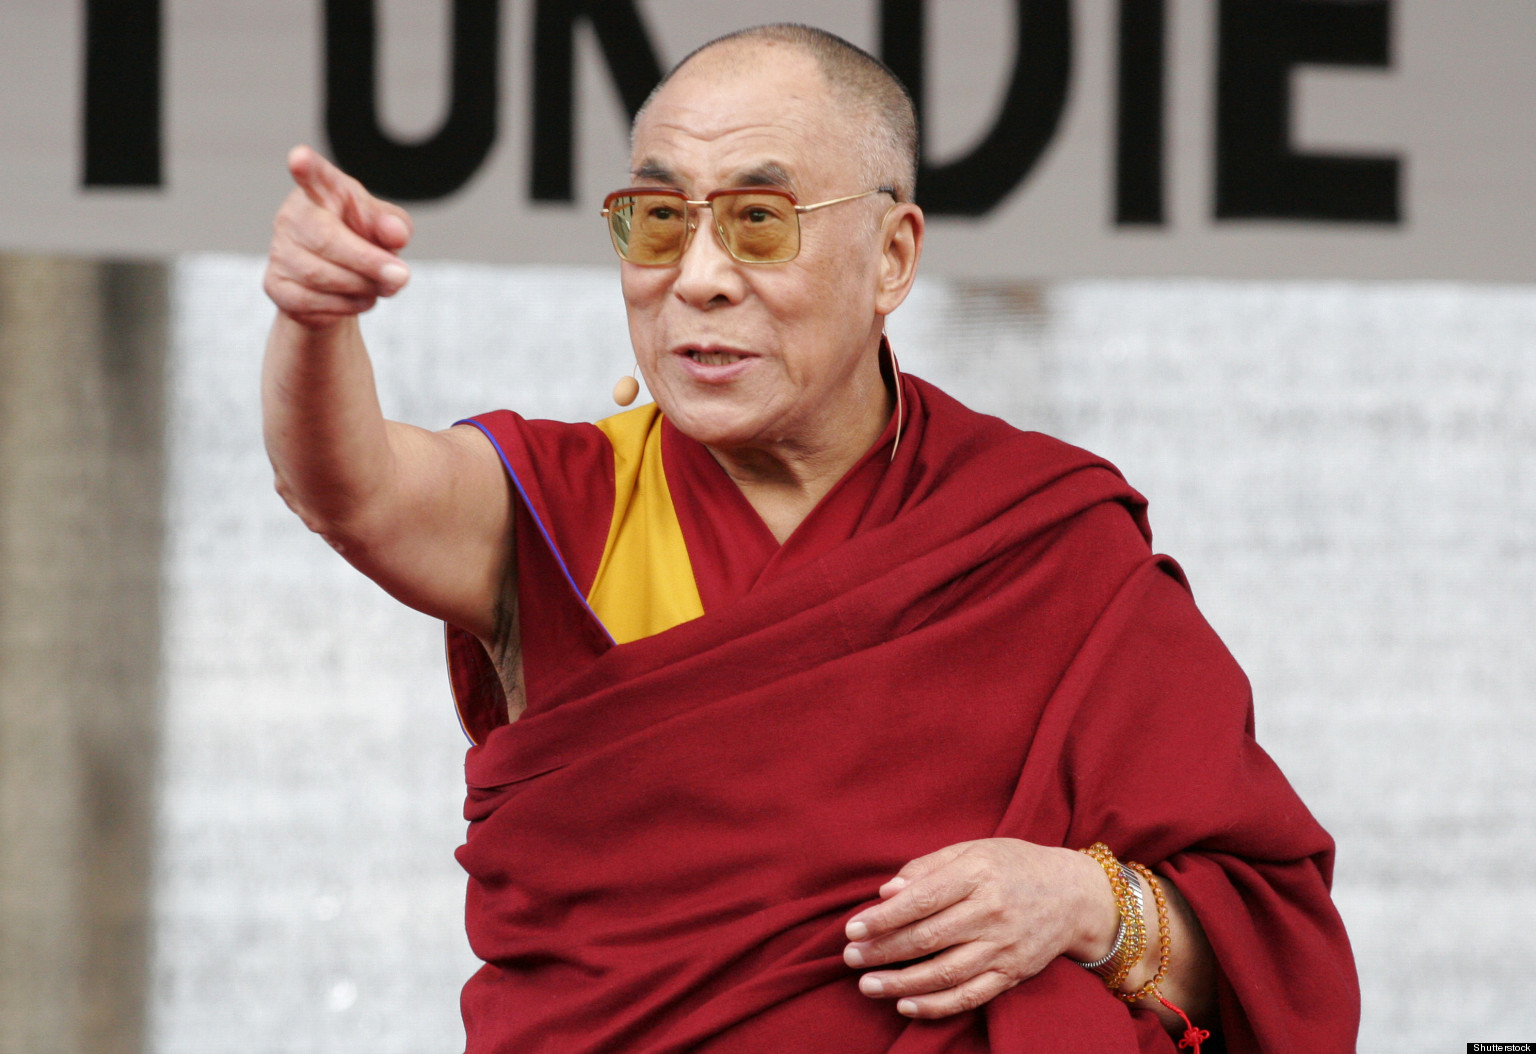 Dalai Lama Says He Would Support A Woman Successor